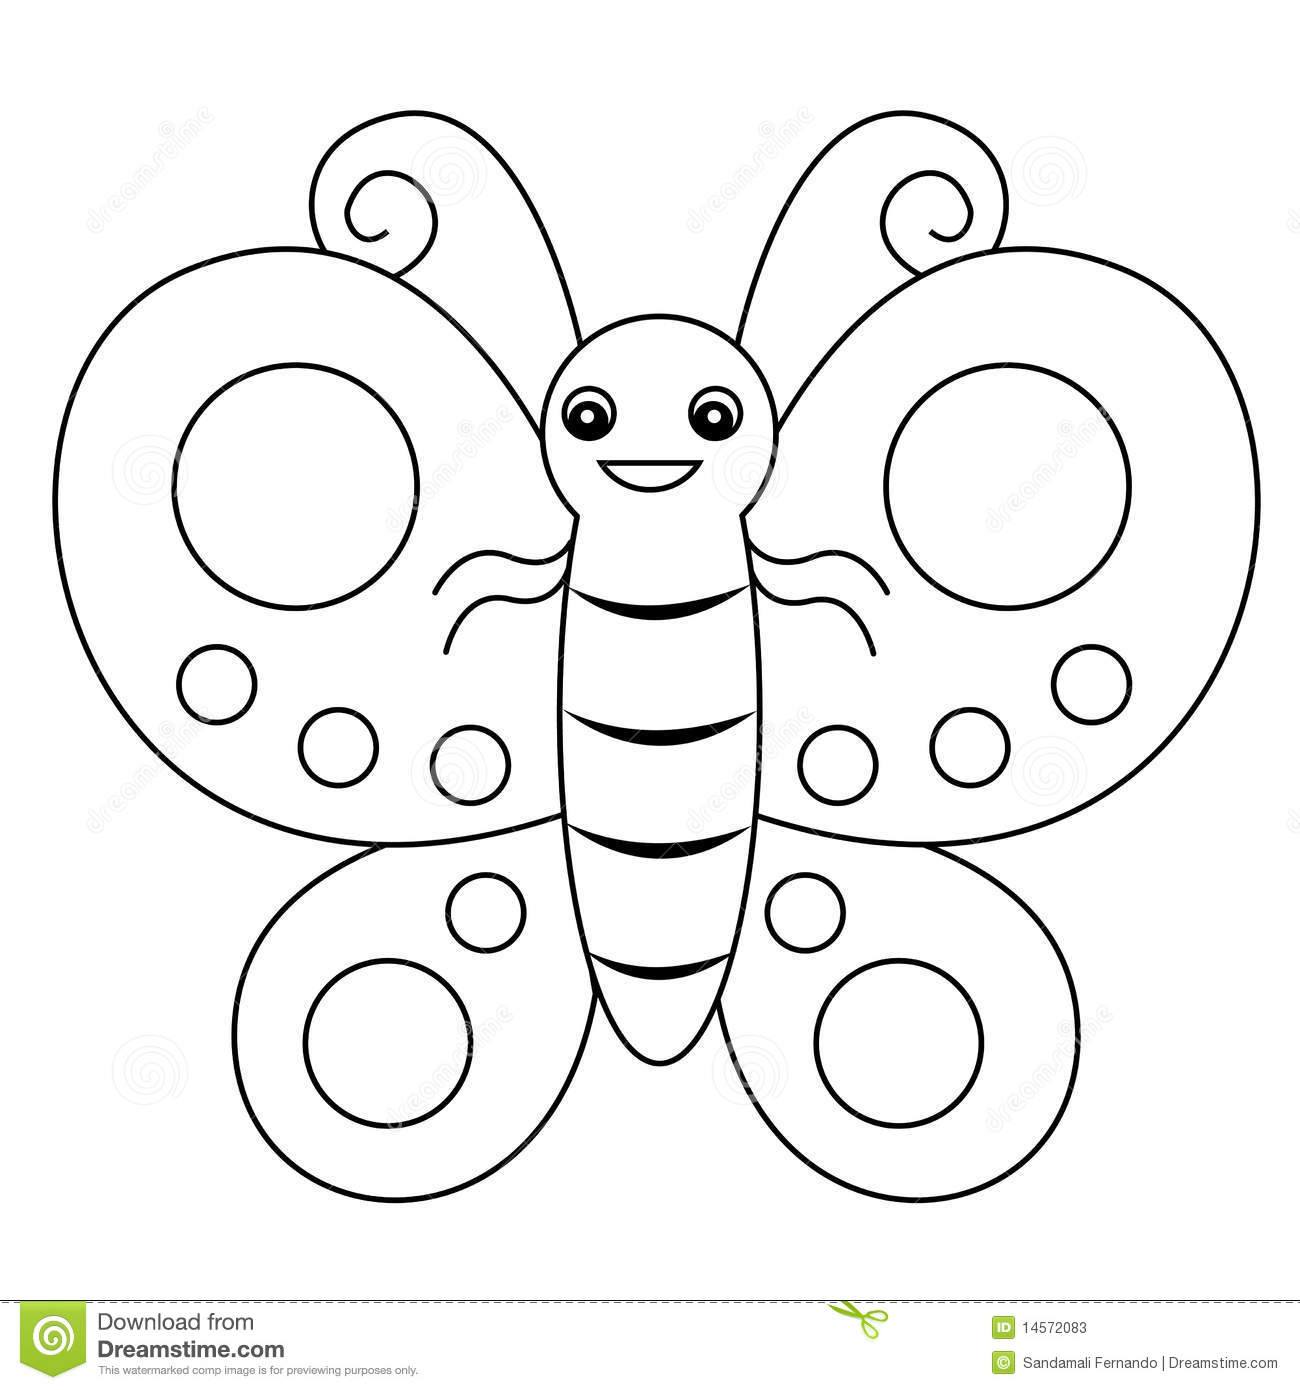 Butterfly coloring book graphic /(lineart) illustration isolated on ...